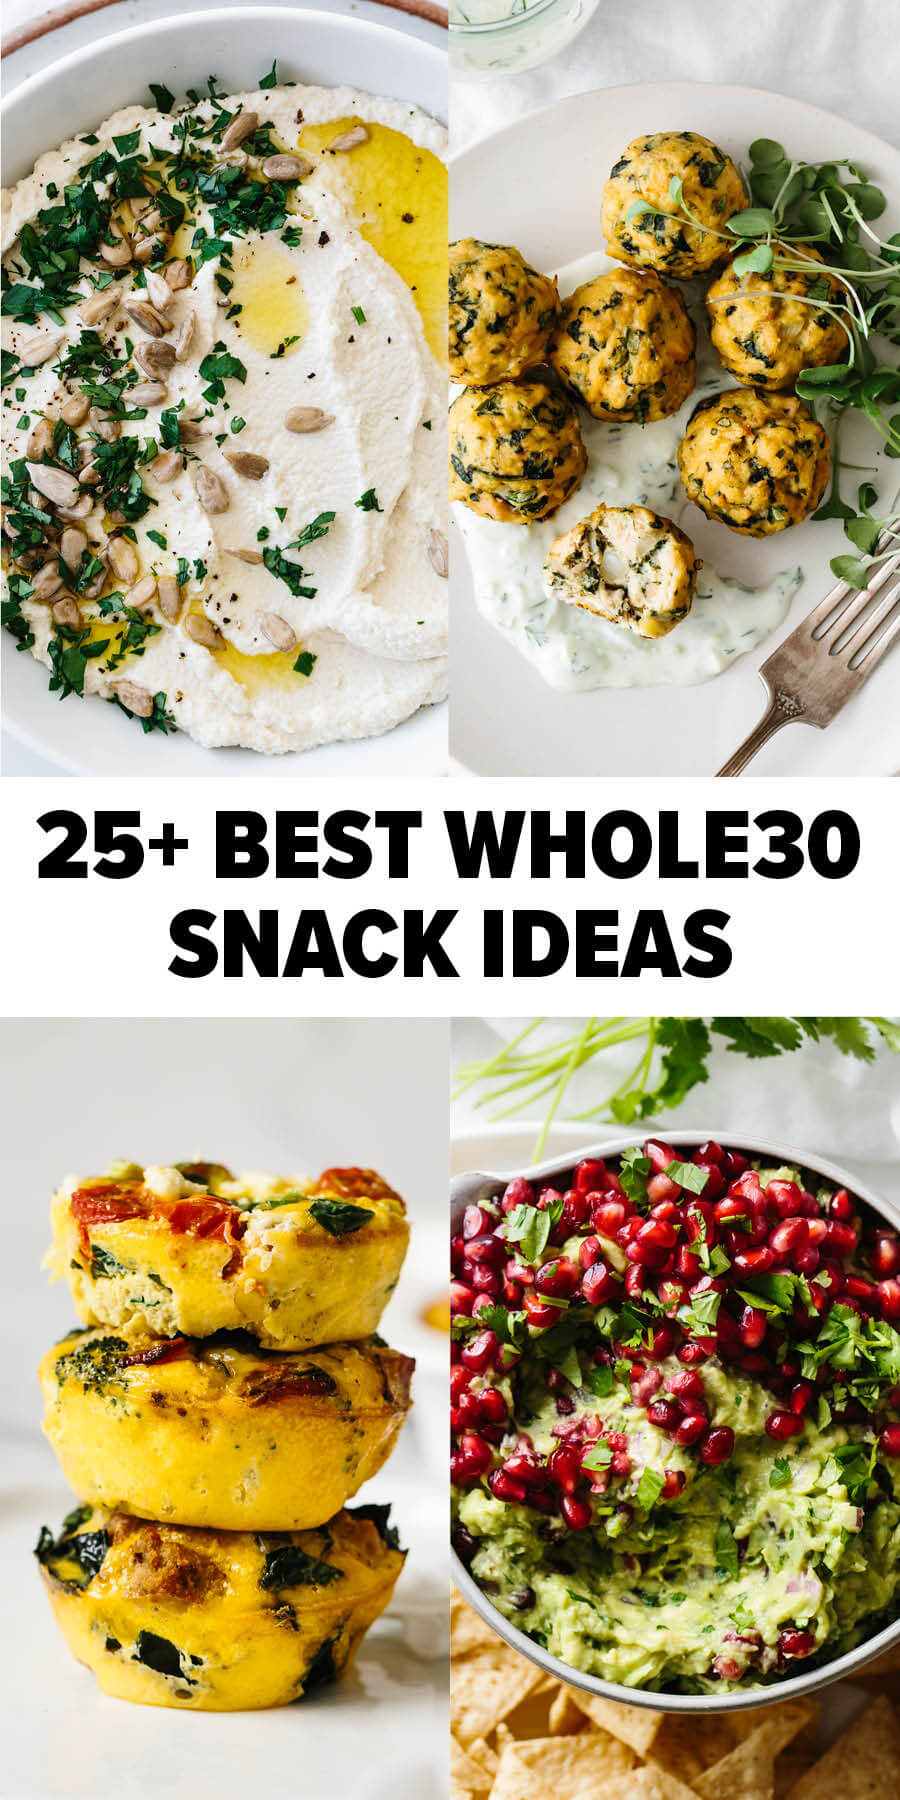 Best whole30 snack ideas.